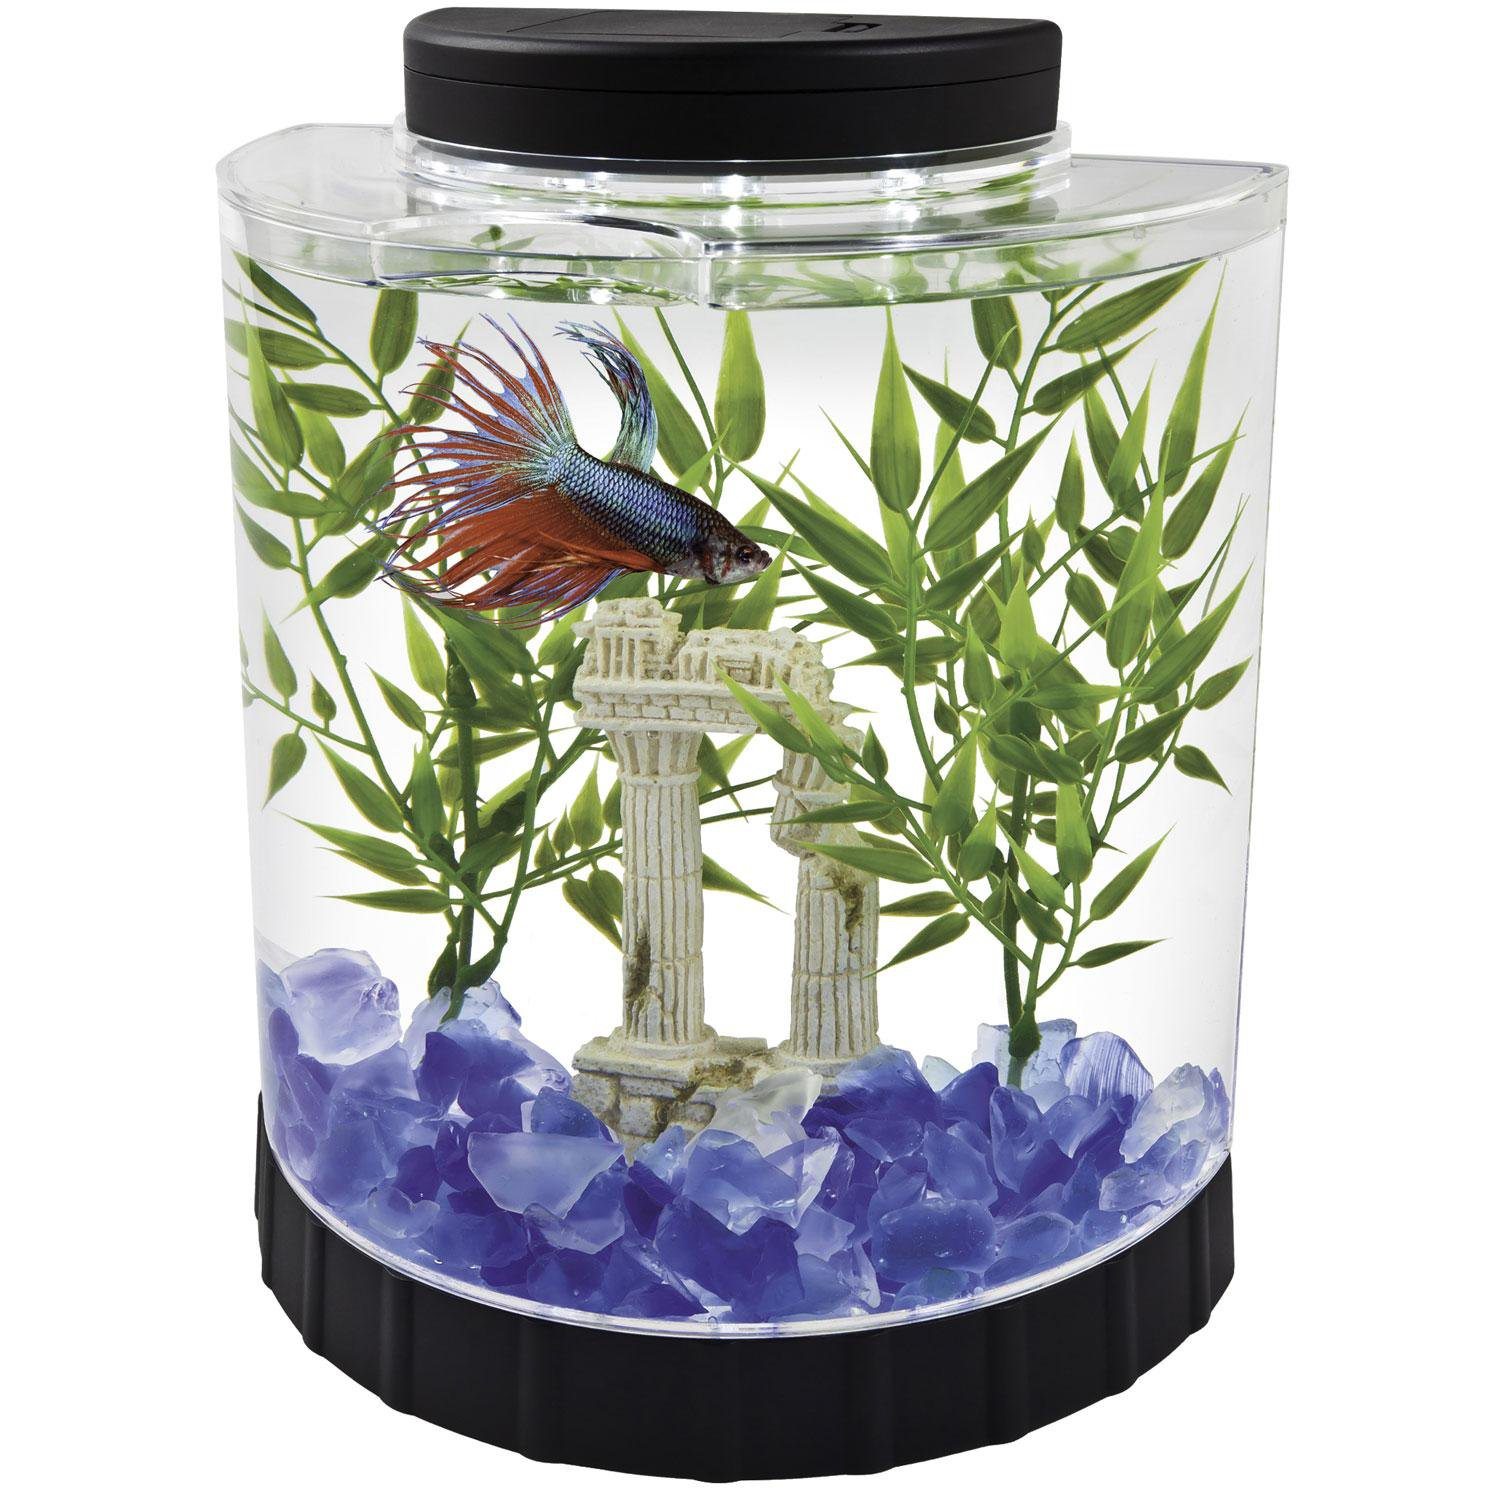 Fish Aquarium Rates In Delhi - Globe aquarium fish tank tetra 1 gallon led half moon betta kit